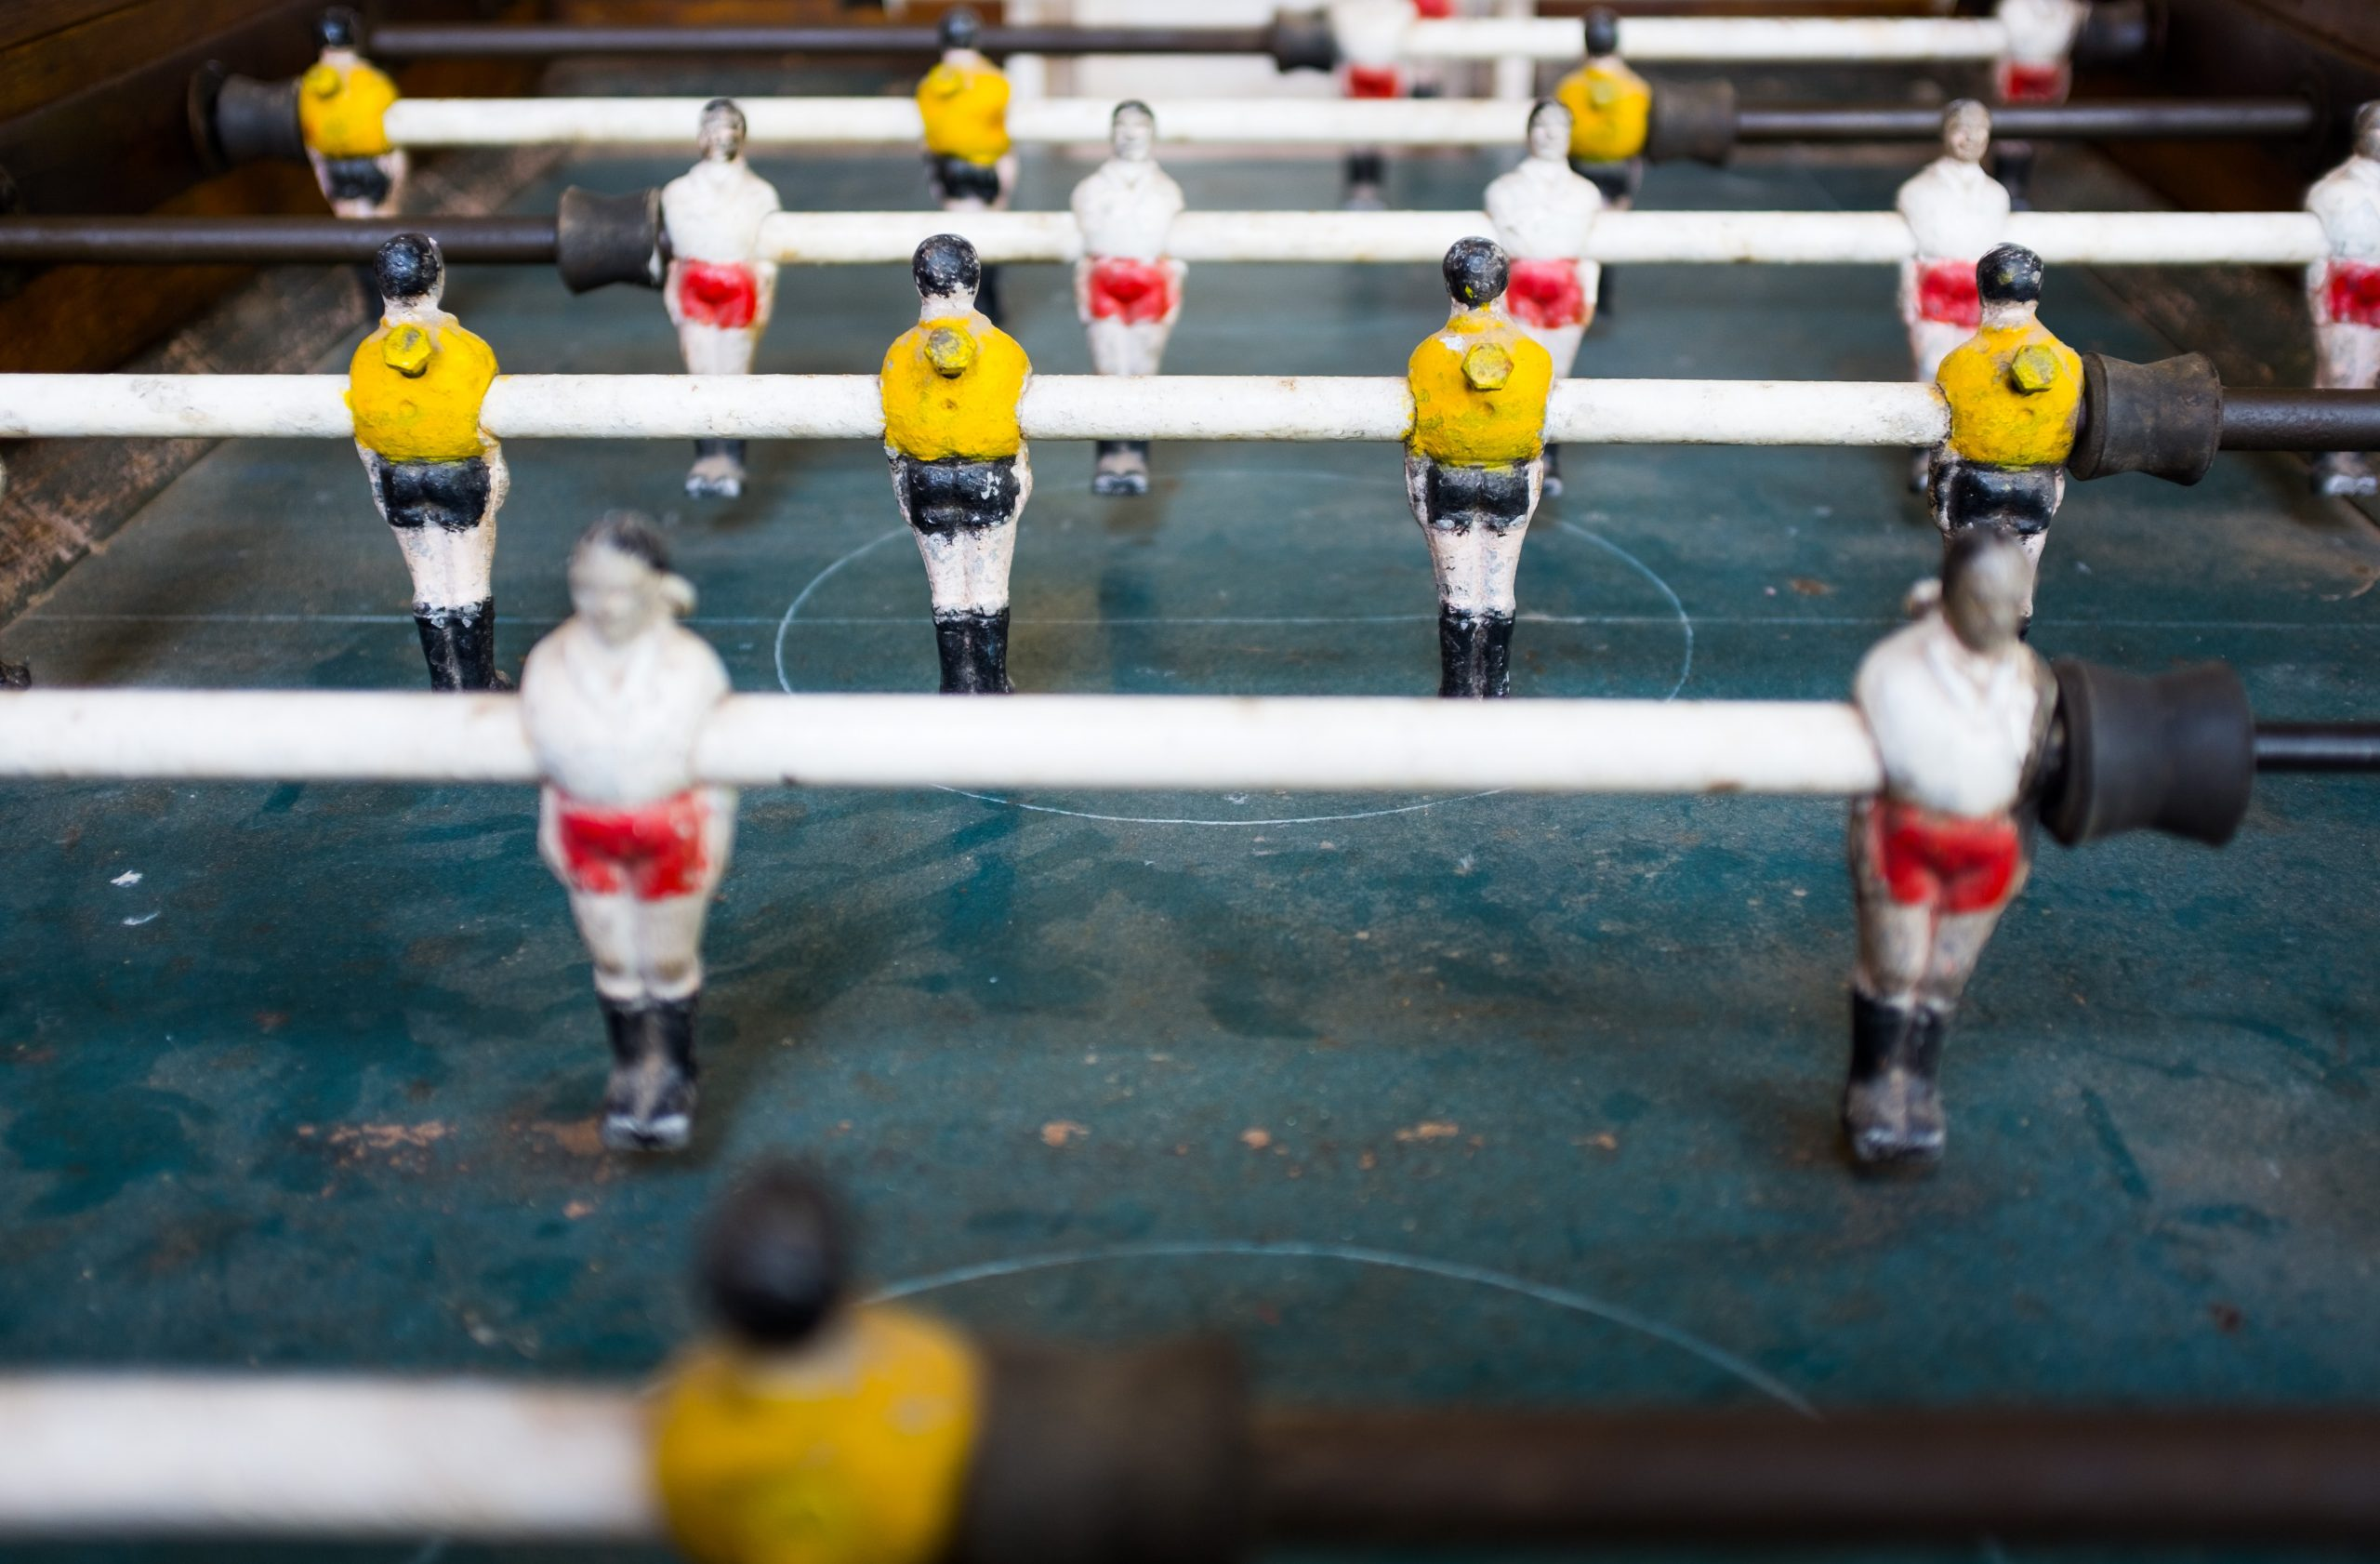 Table football players white competing against yellow